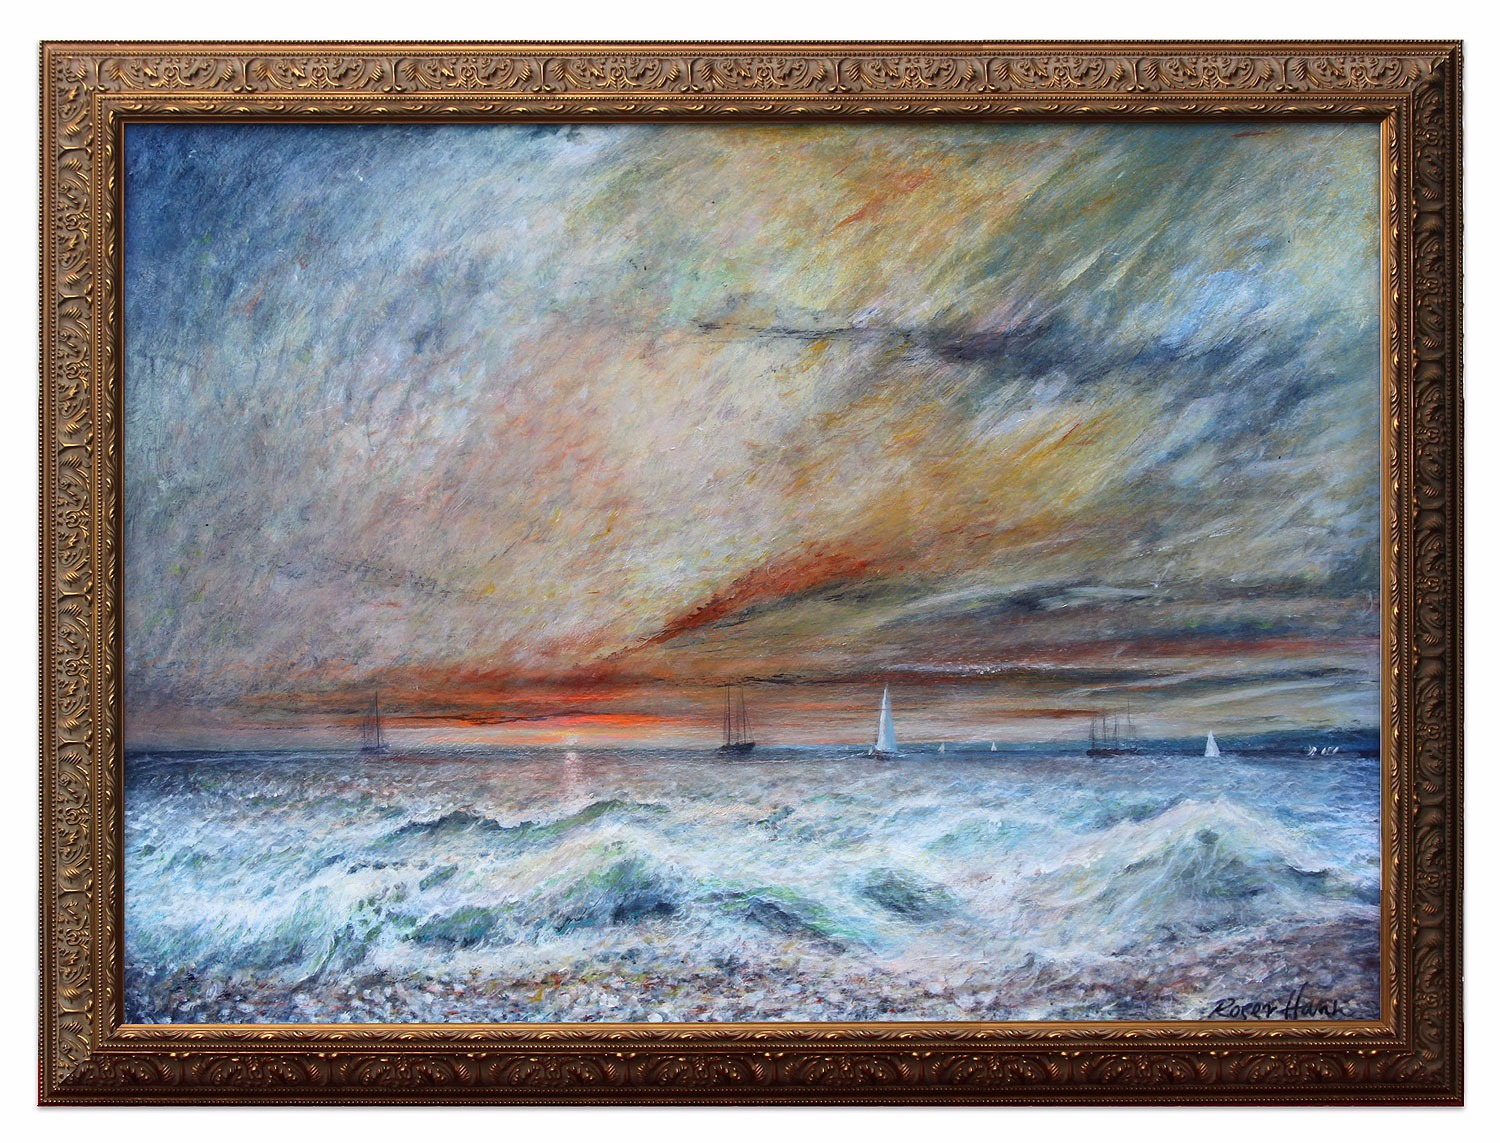 Boats returning at sunset, original painting by British artist Roger Hann